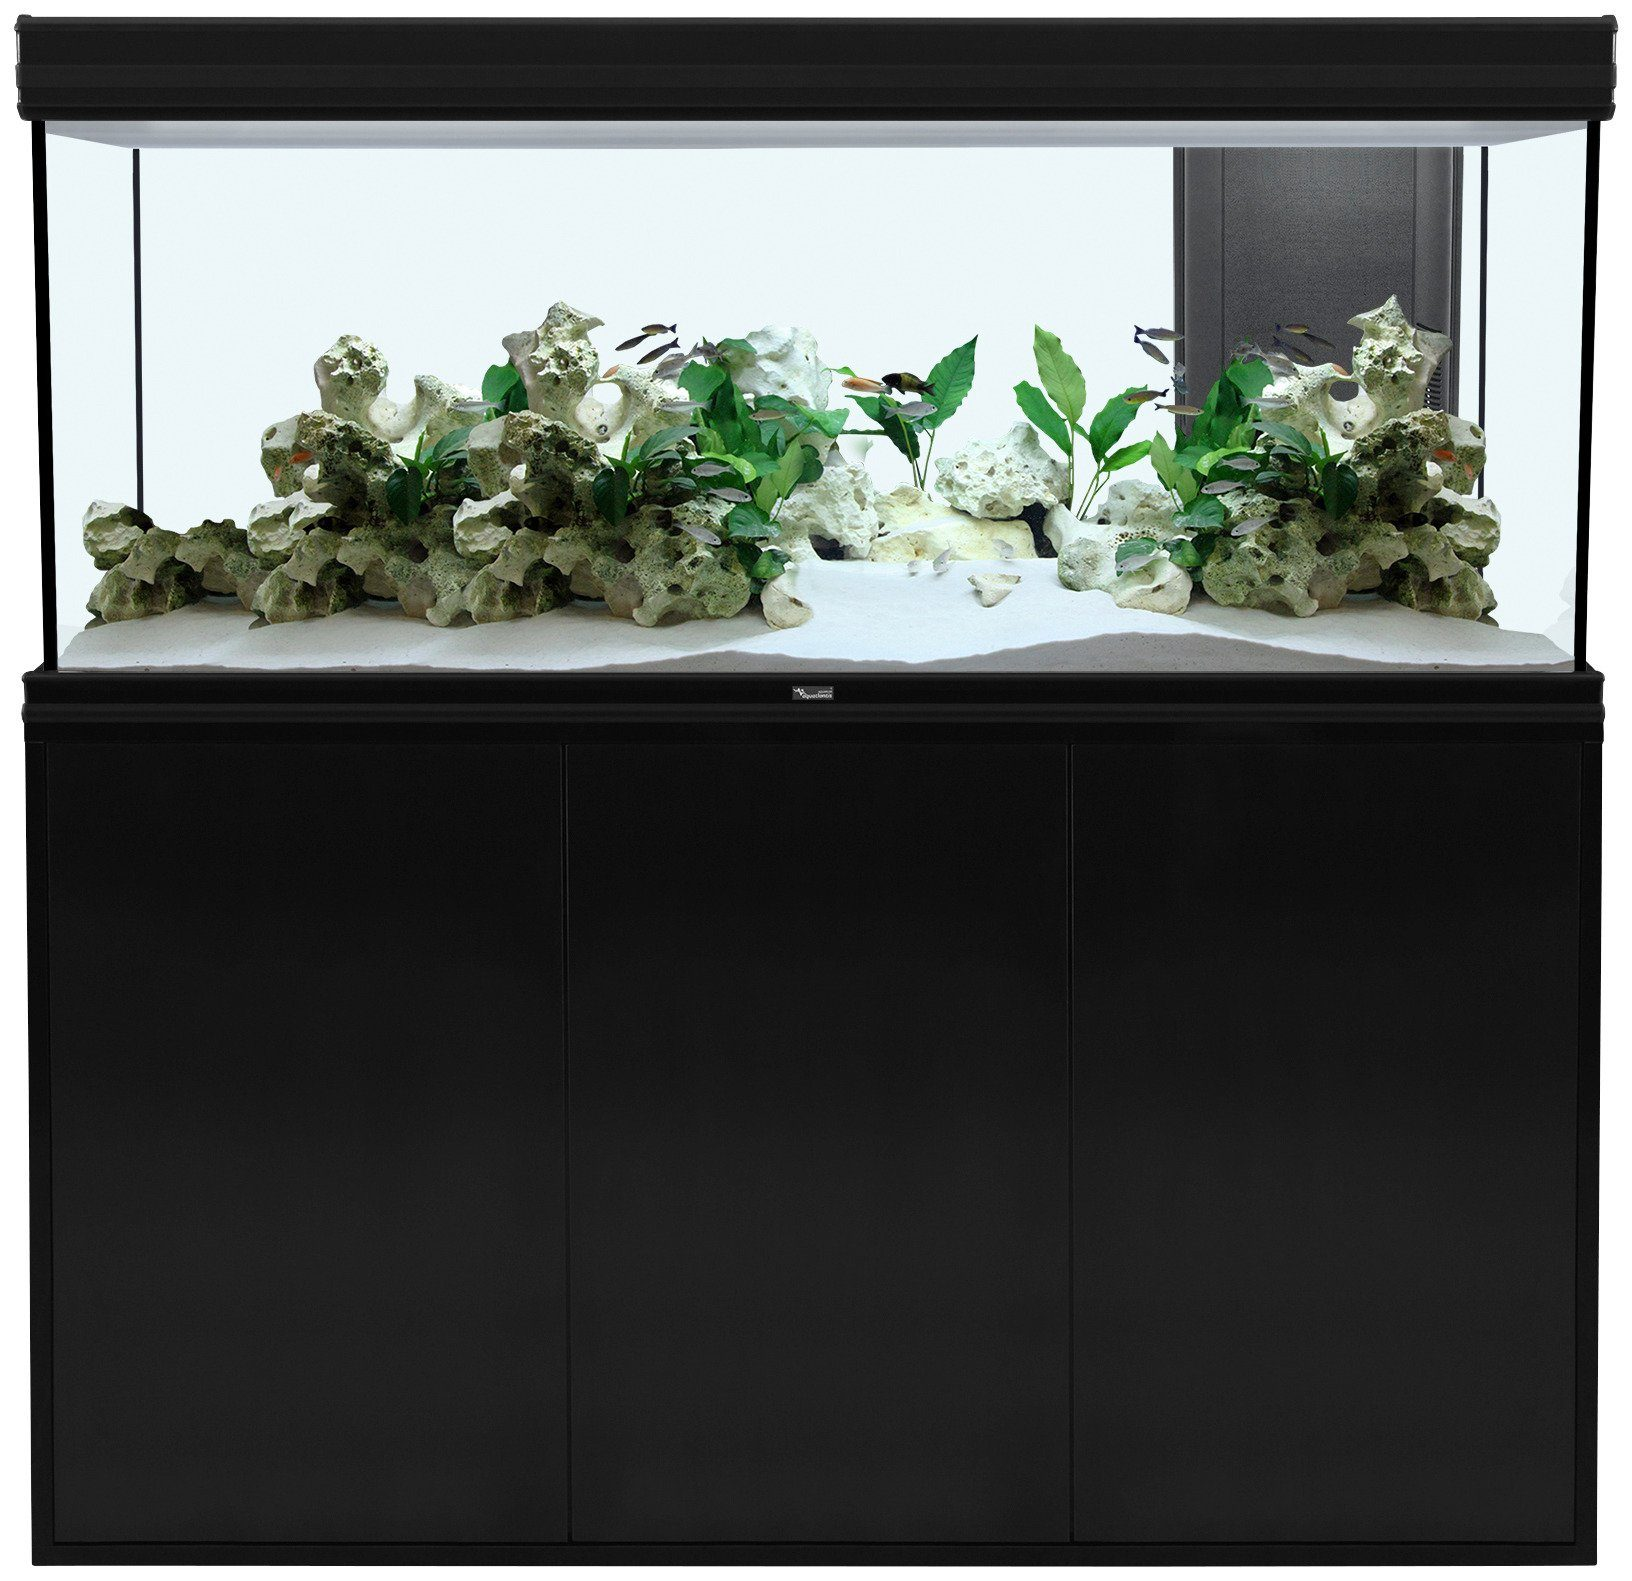 Aquarien-Set »Fusion 150 LED«